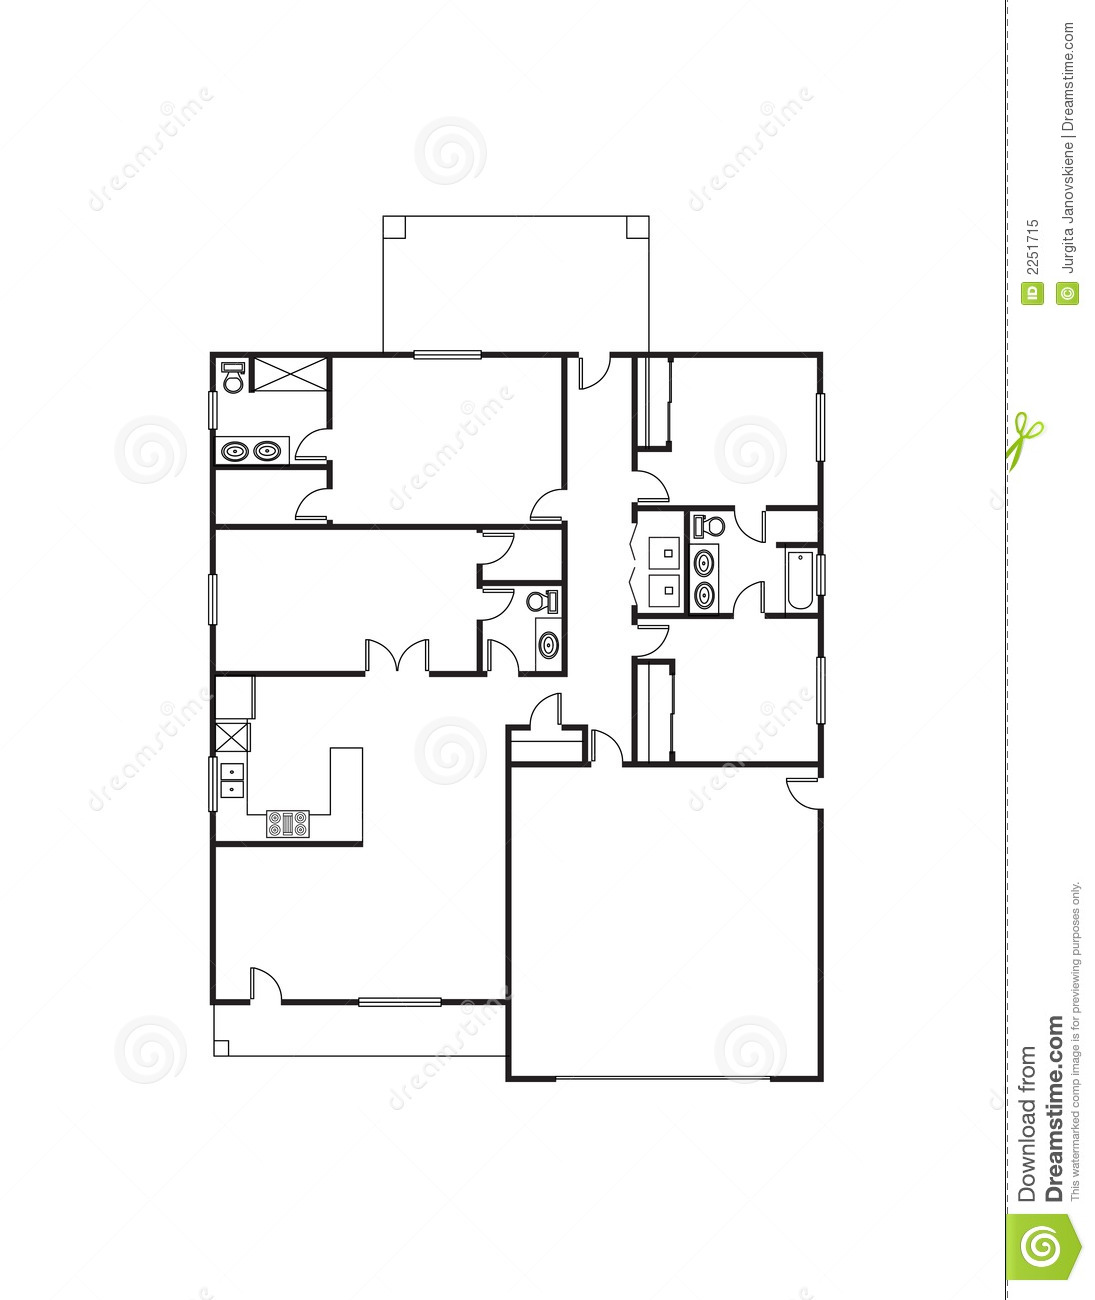 House Plan Royalty Free Stock Photo - Image: 2251715